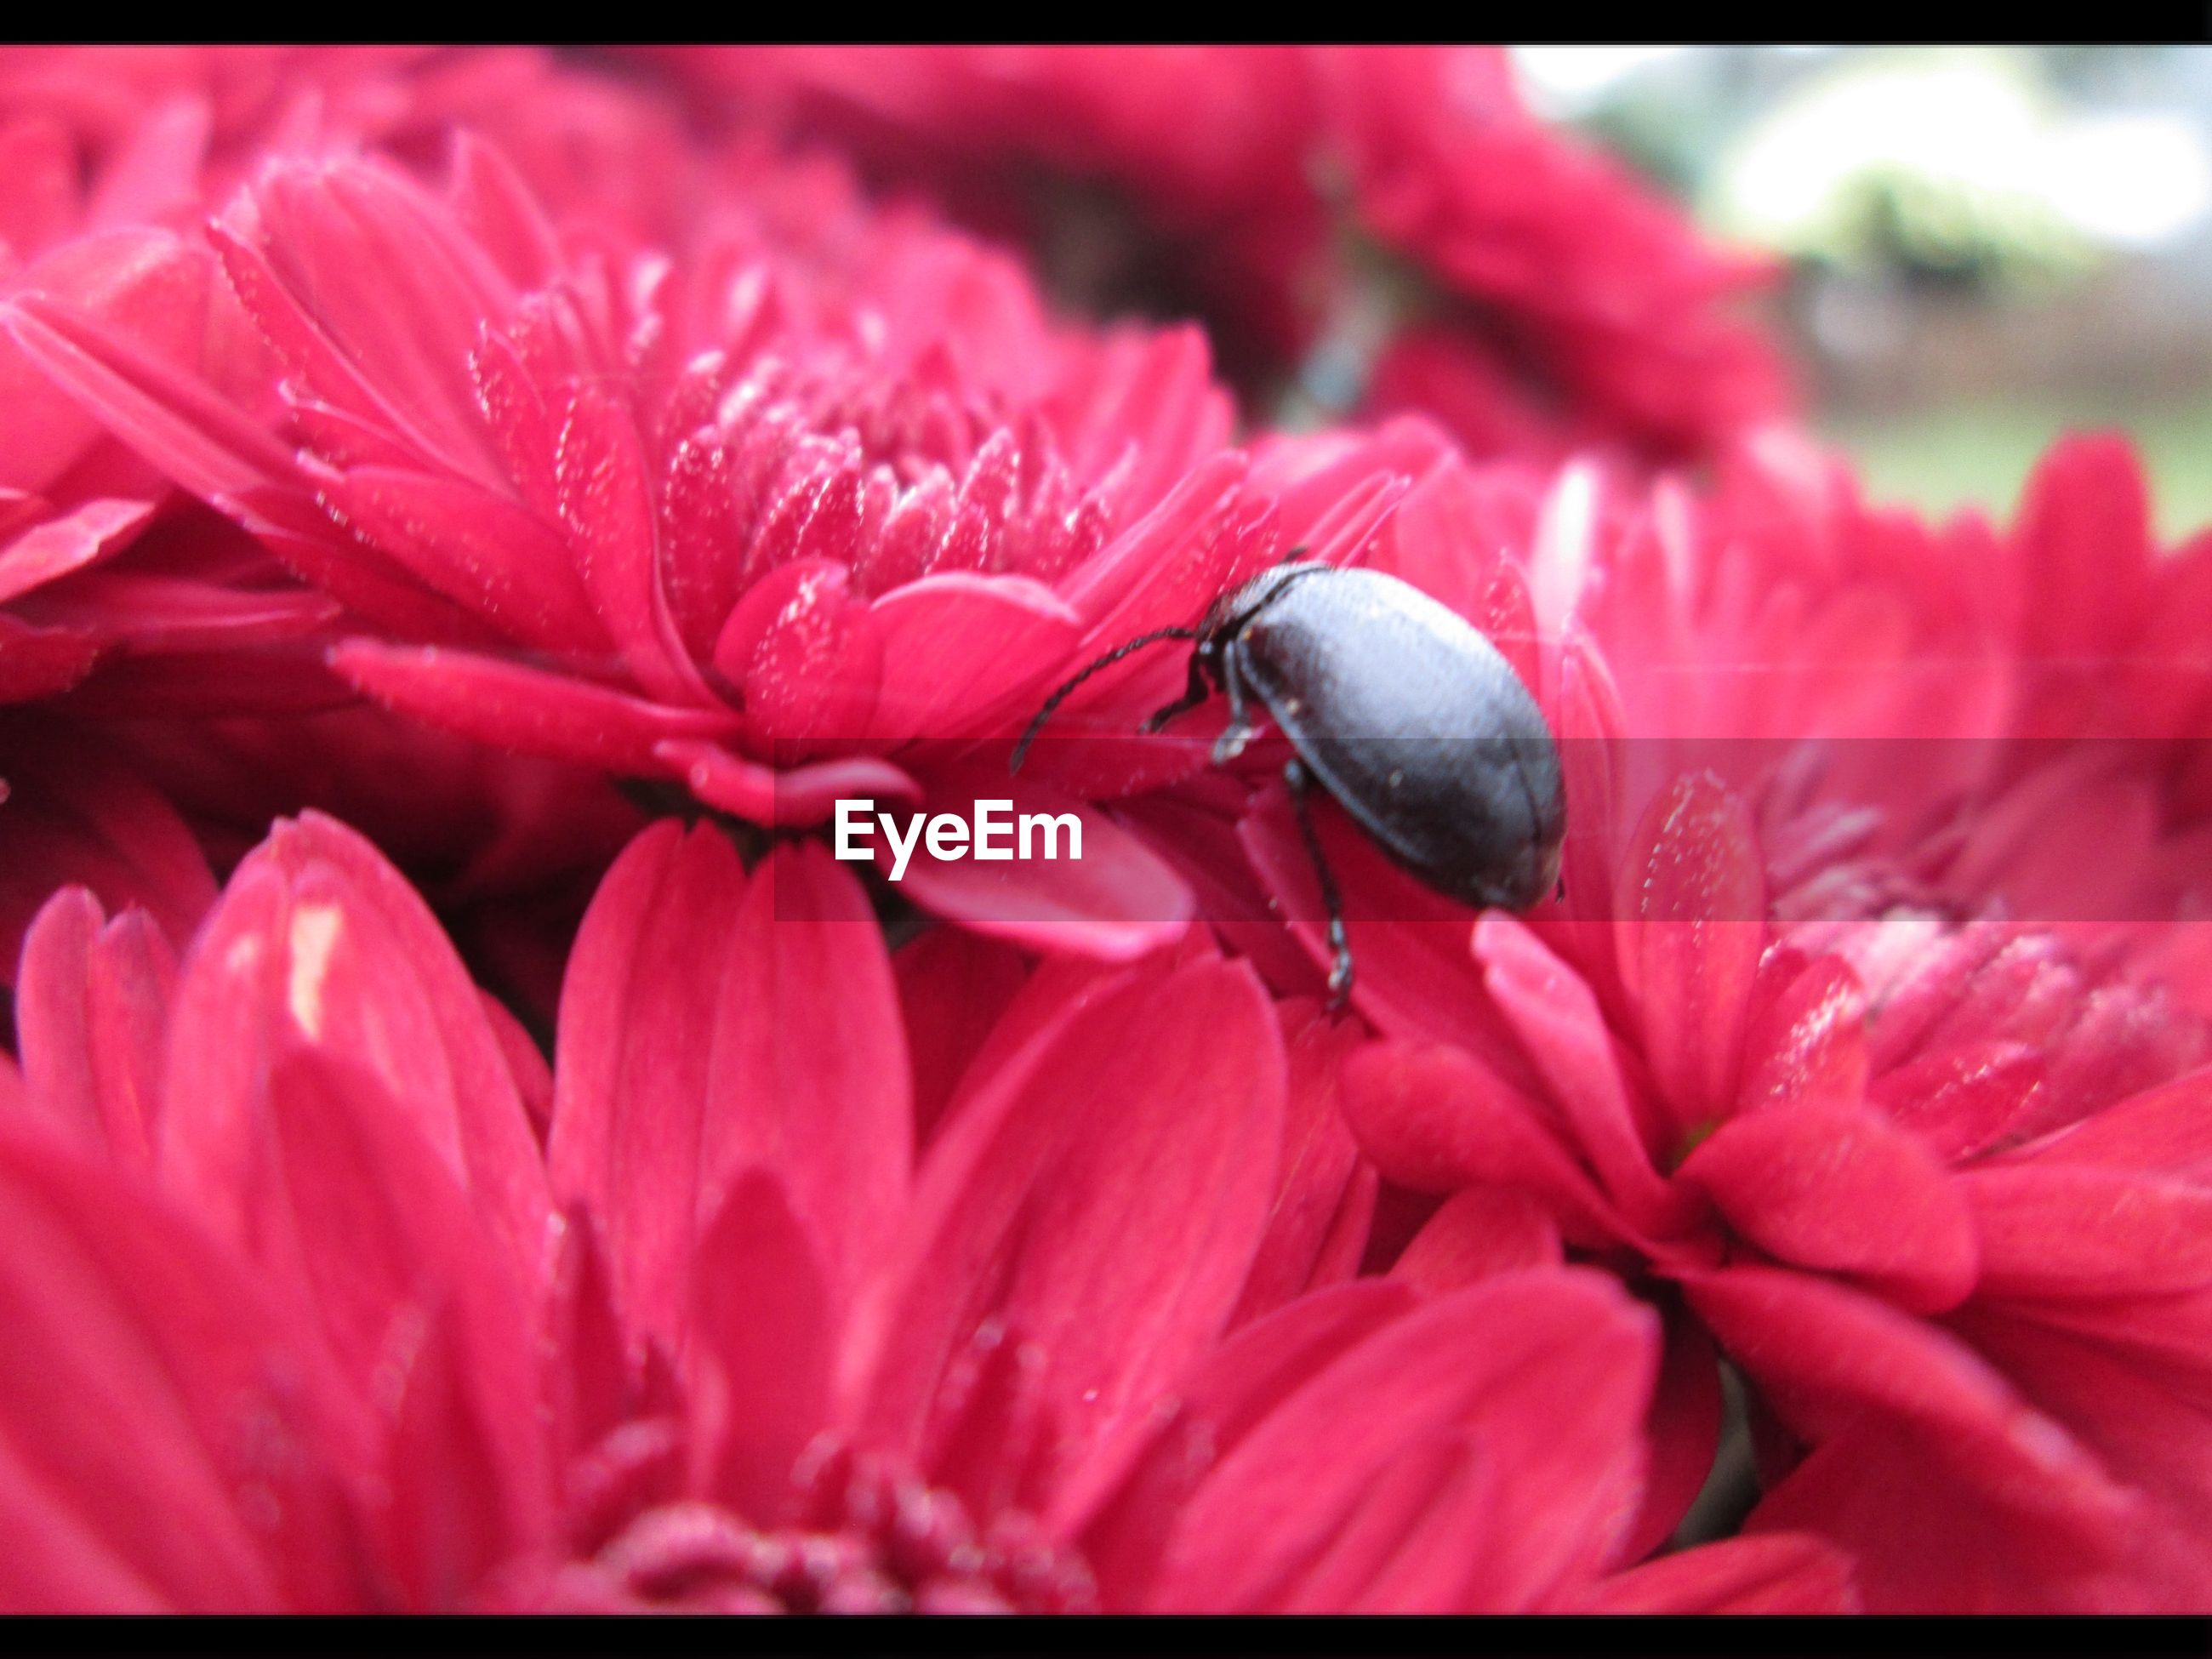 animals in the wild, animal themes, insect, wildlife, one animal, flower, petal, close-up, fragility, beauty in nature, freshness, pollination, nature, flower head, pink color, red, growth, focus on foreground, symbiotic relationship, bee